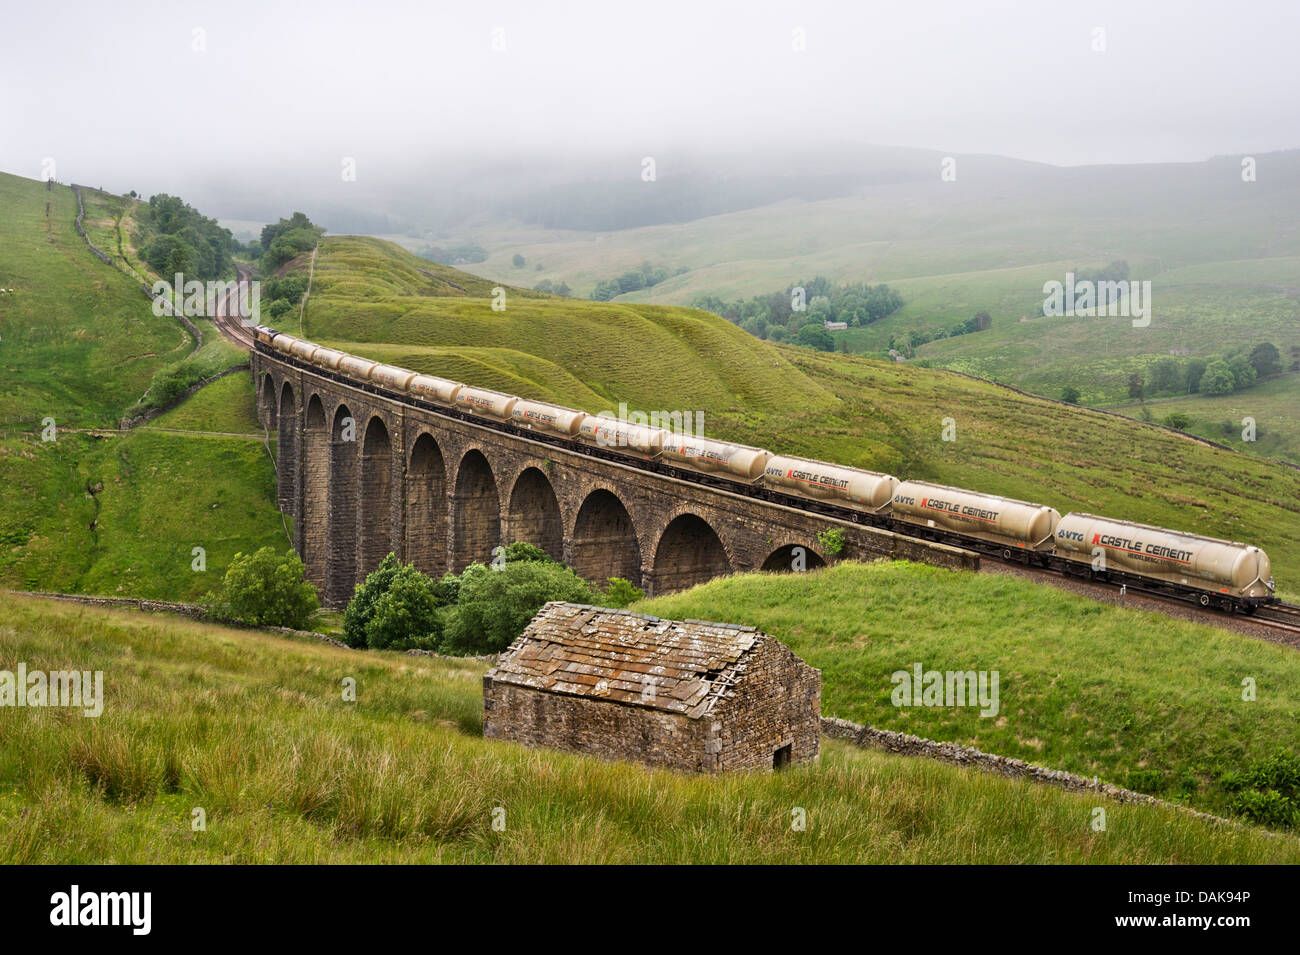 Train of cement waggons crosses Artengill viaduct, Dentdale, Settle to Carlisle railway, North Yorkshire, UK - Stock Image